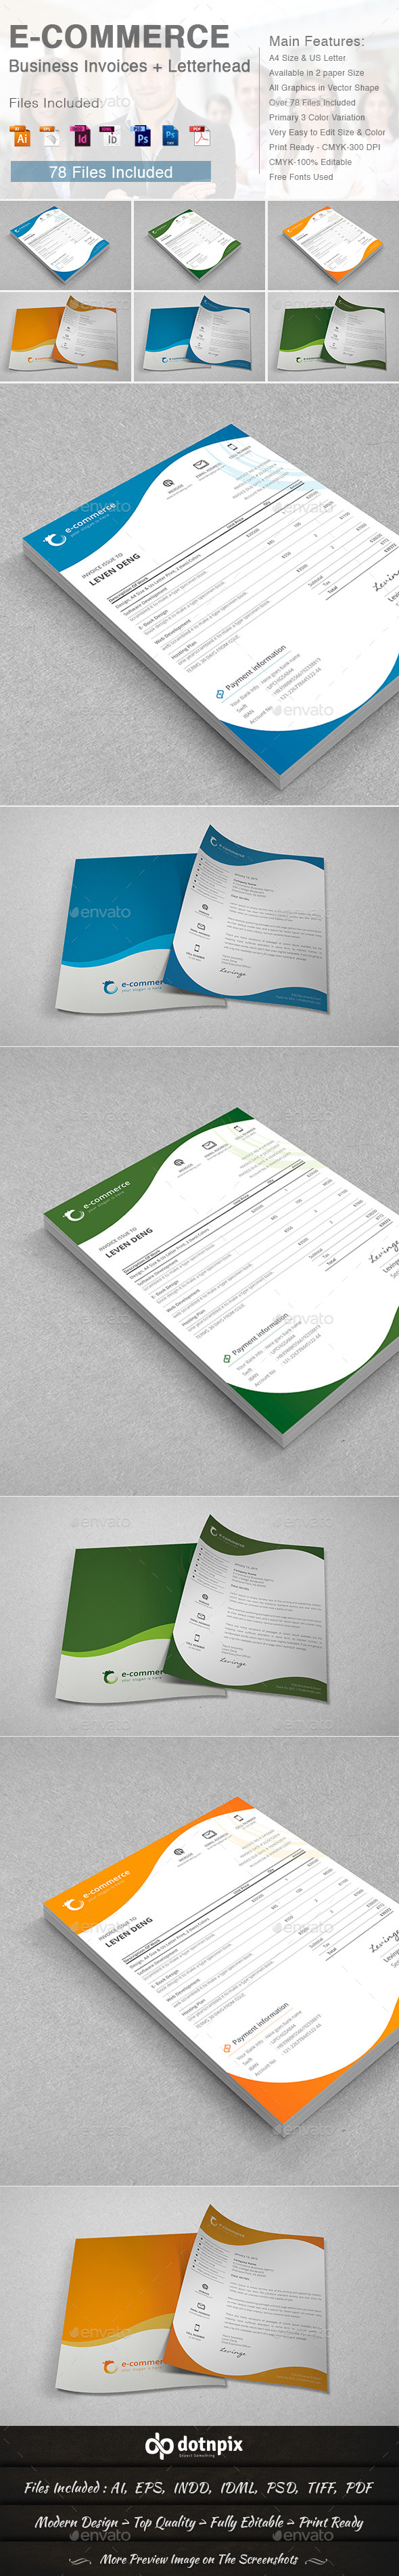 E-Commerce Business Invoices + Letterhead - Proposals & Invoices Stationery